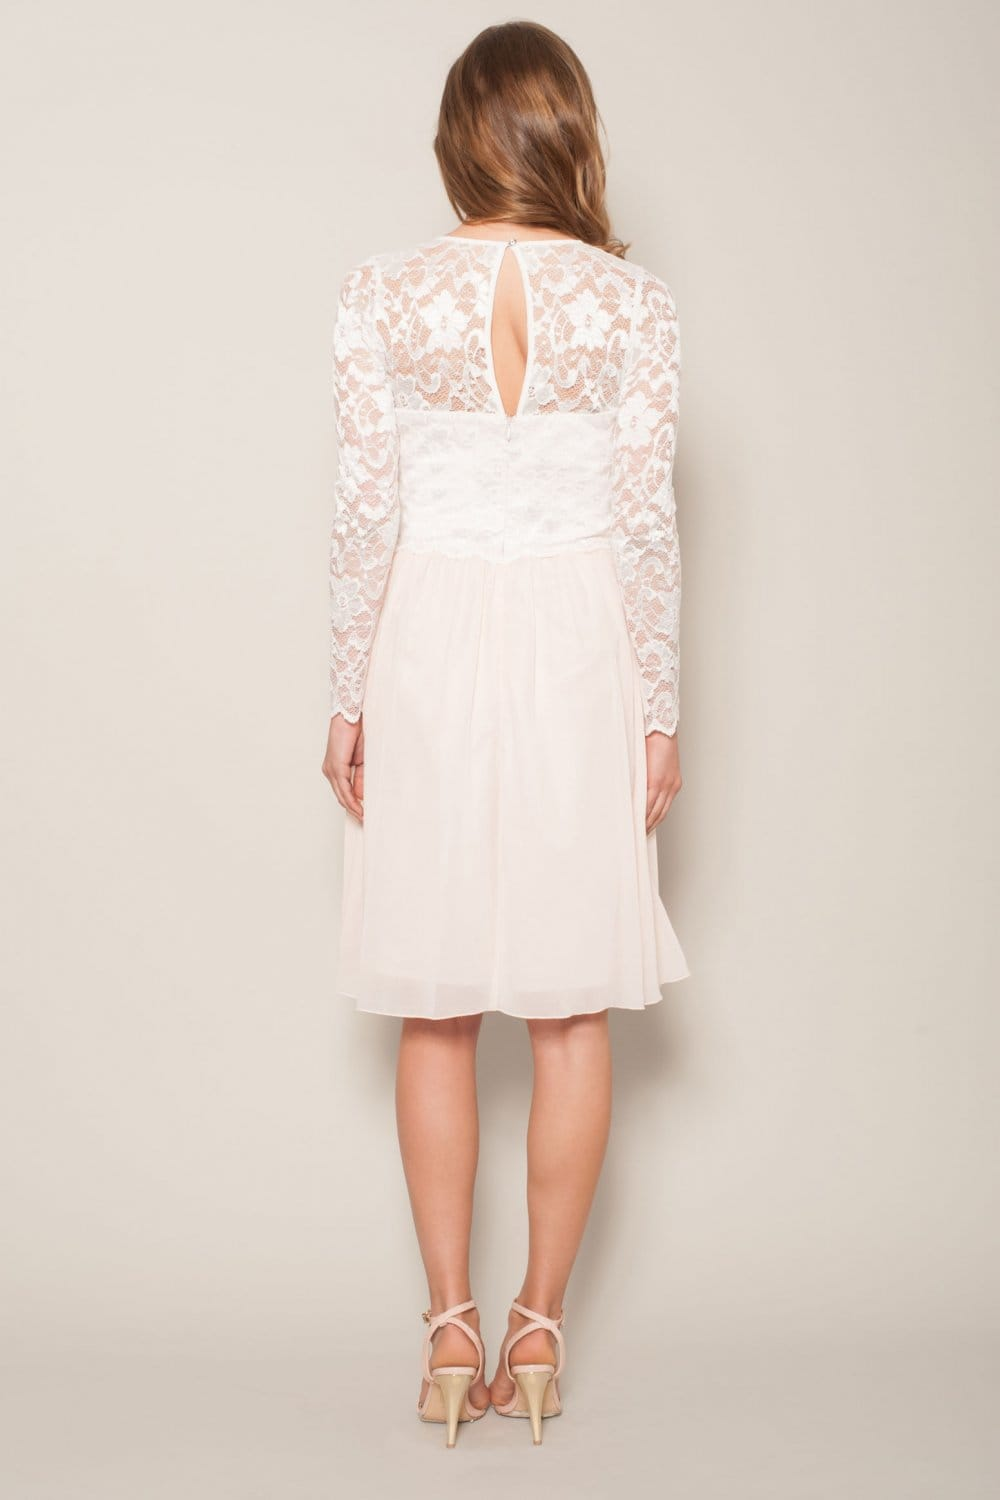 Shop for cream lace dress online at Target. Free shipping on purchases over $35 and save 5% every day with your Target REDcard.